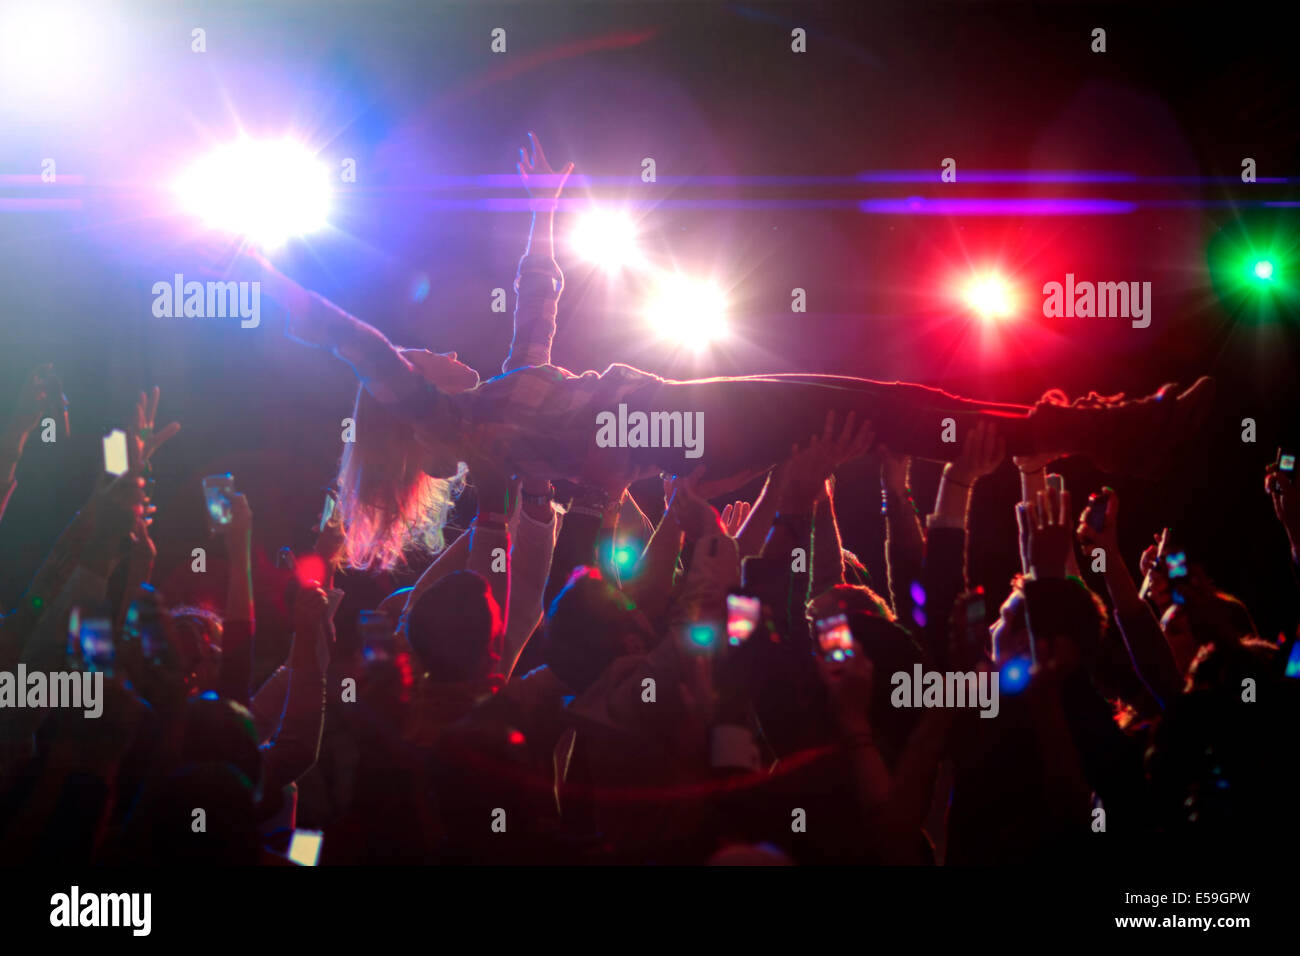 Woman crowd surfing at concert - Stock Image